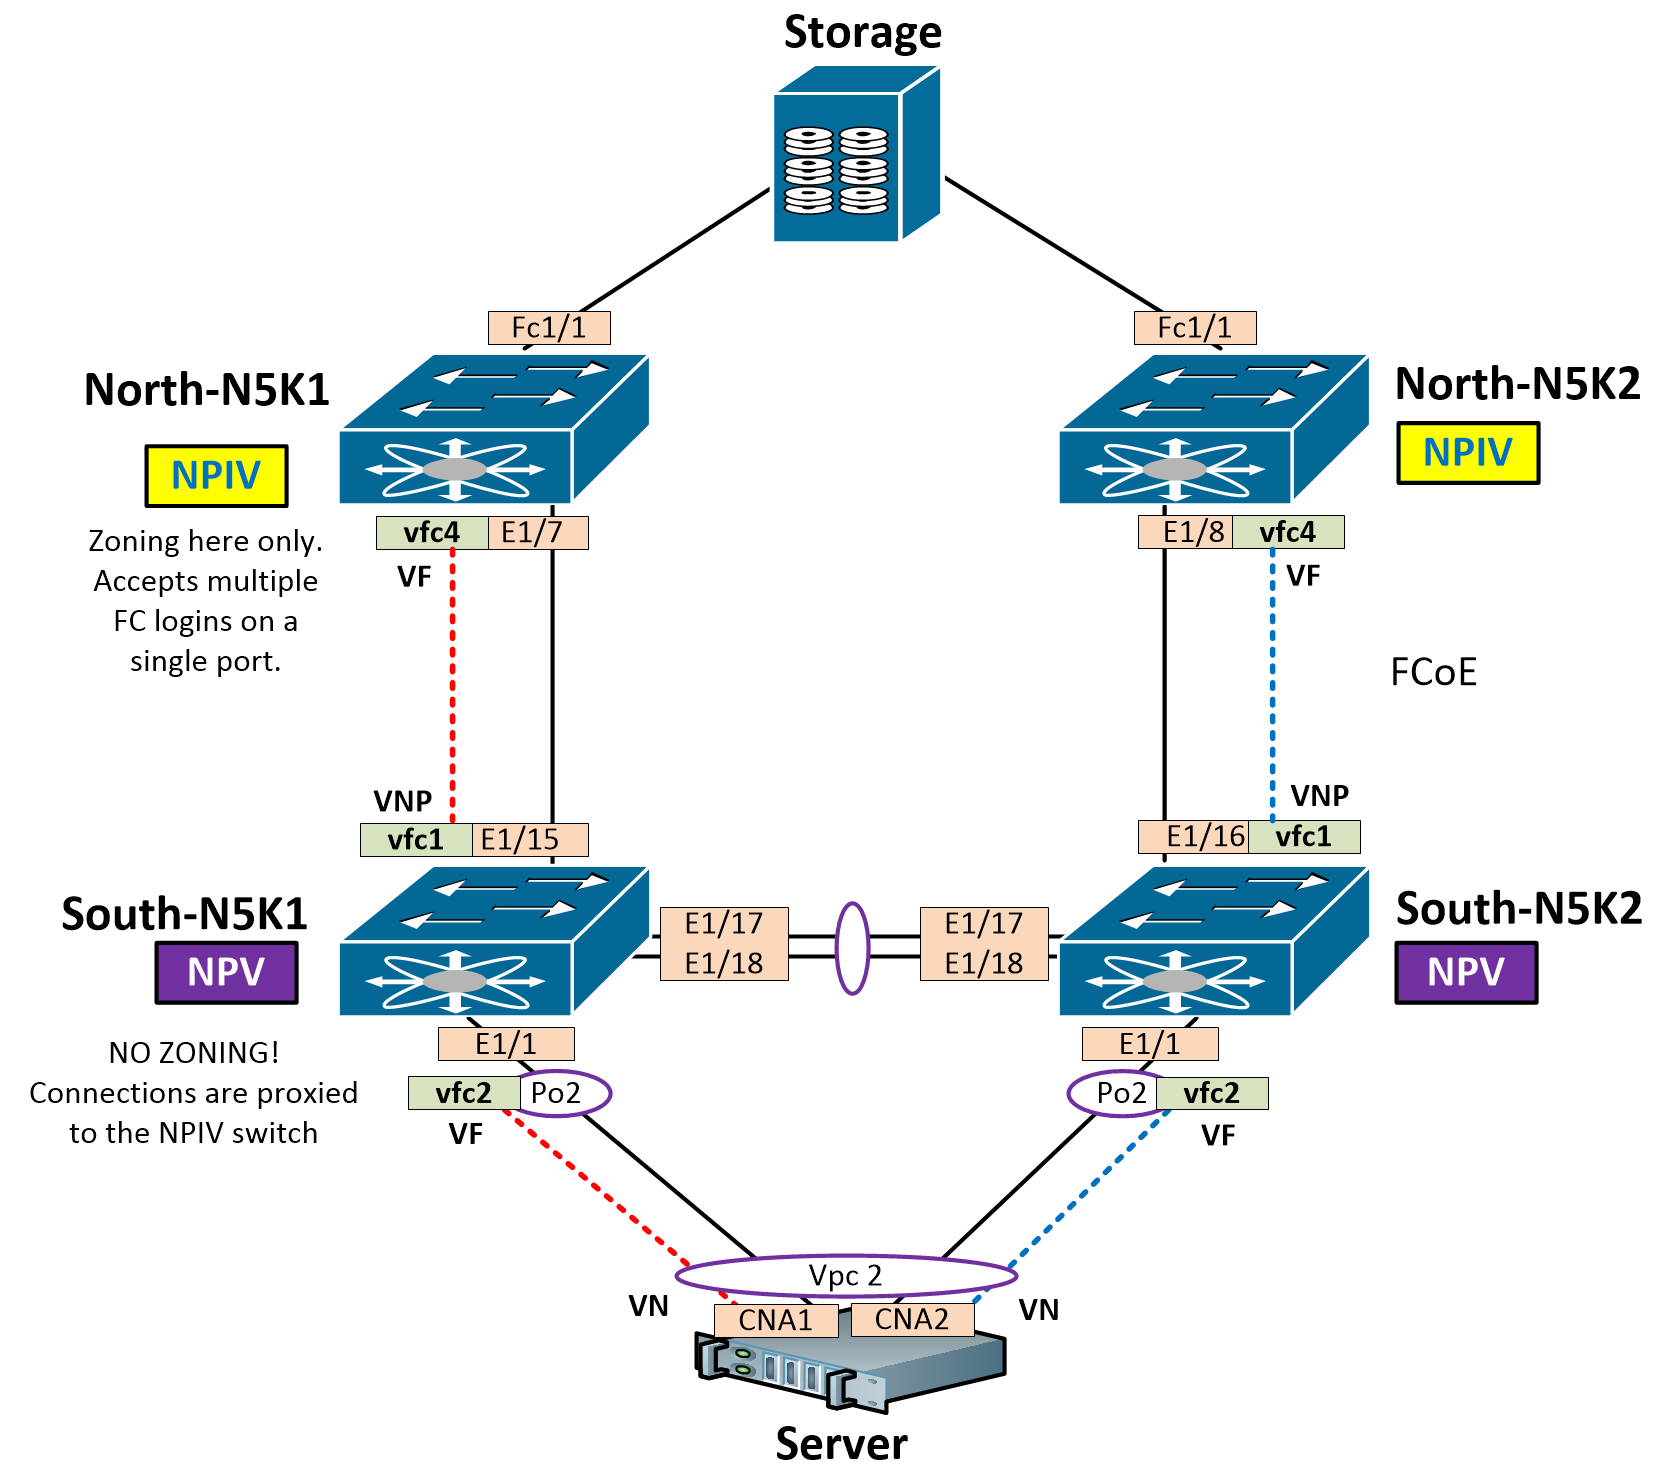 Multihop FCoE To Server In VPC + NPV/NPIV